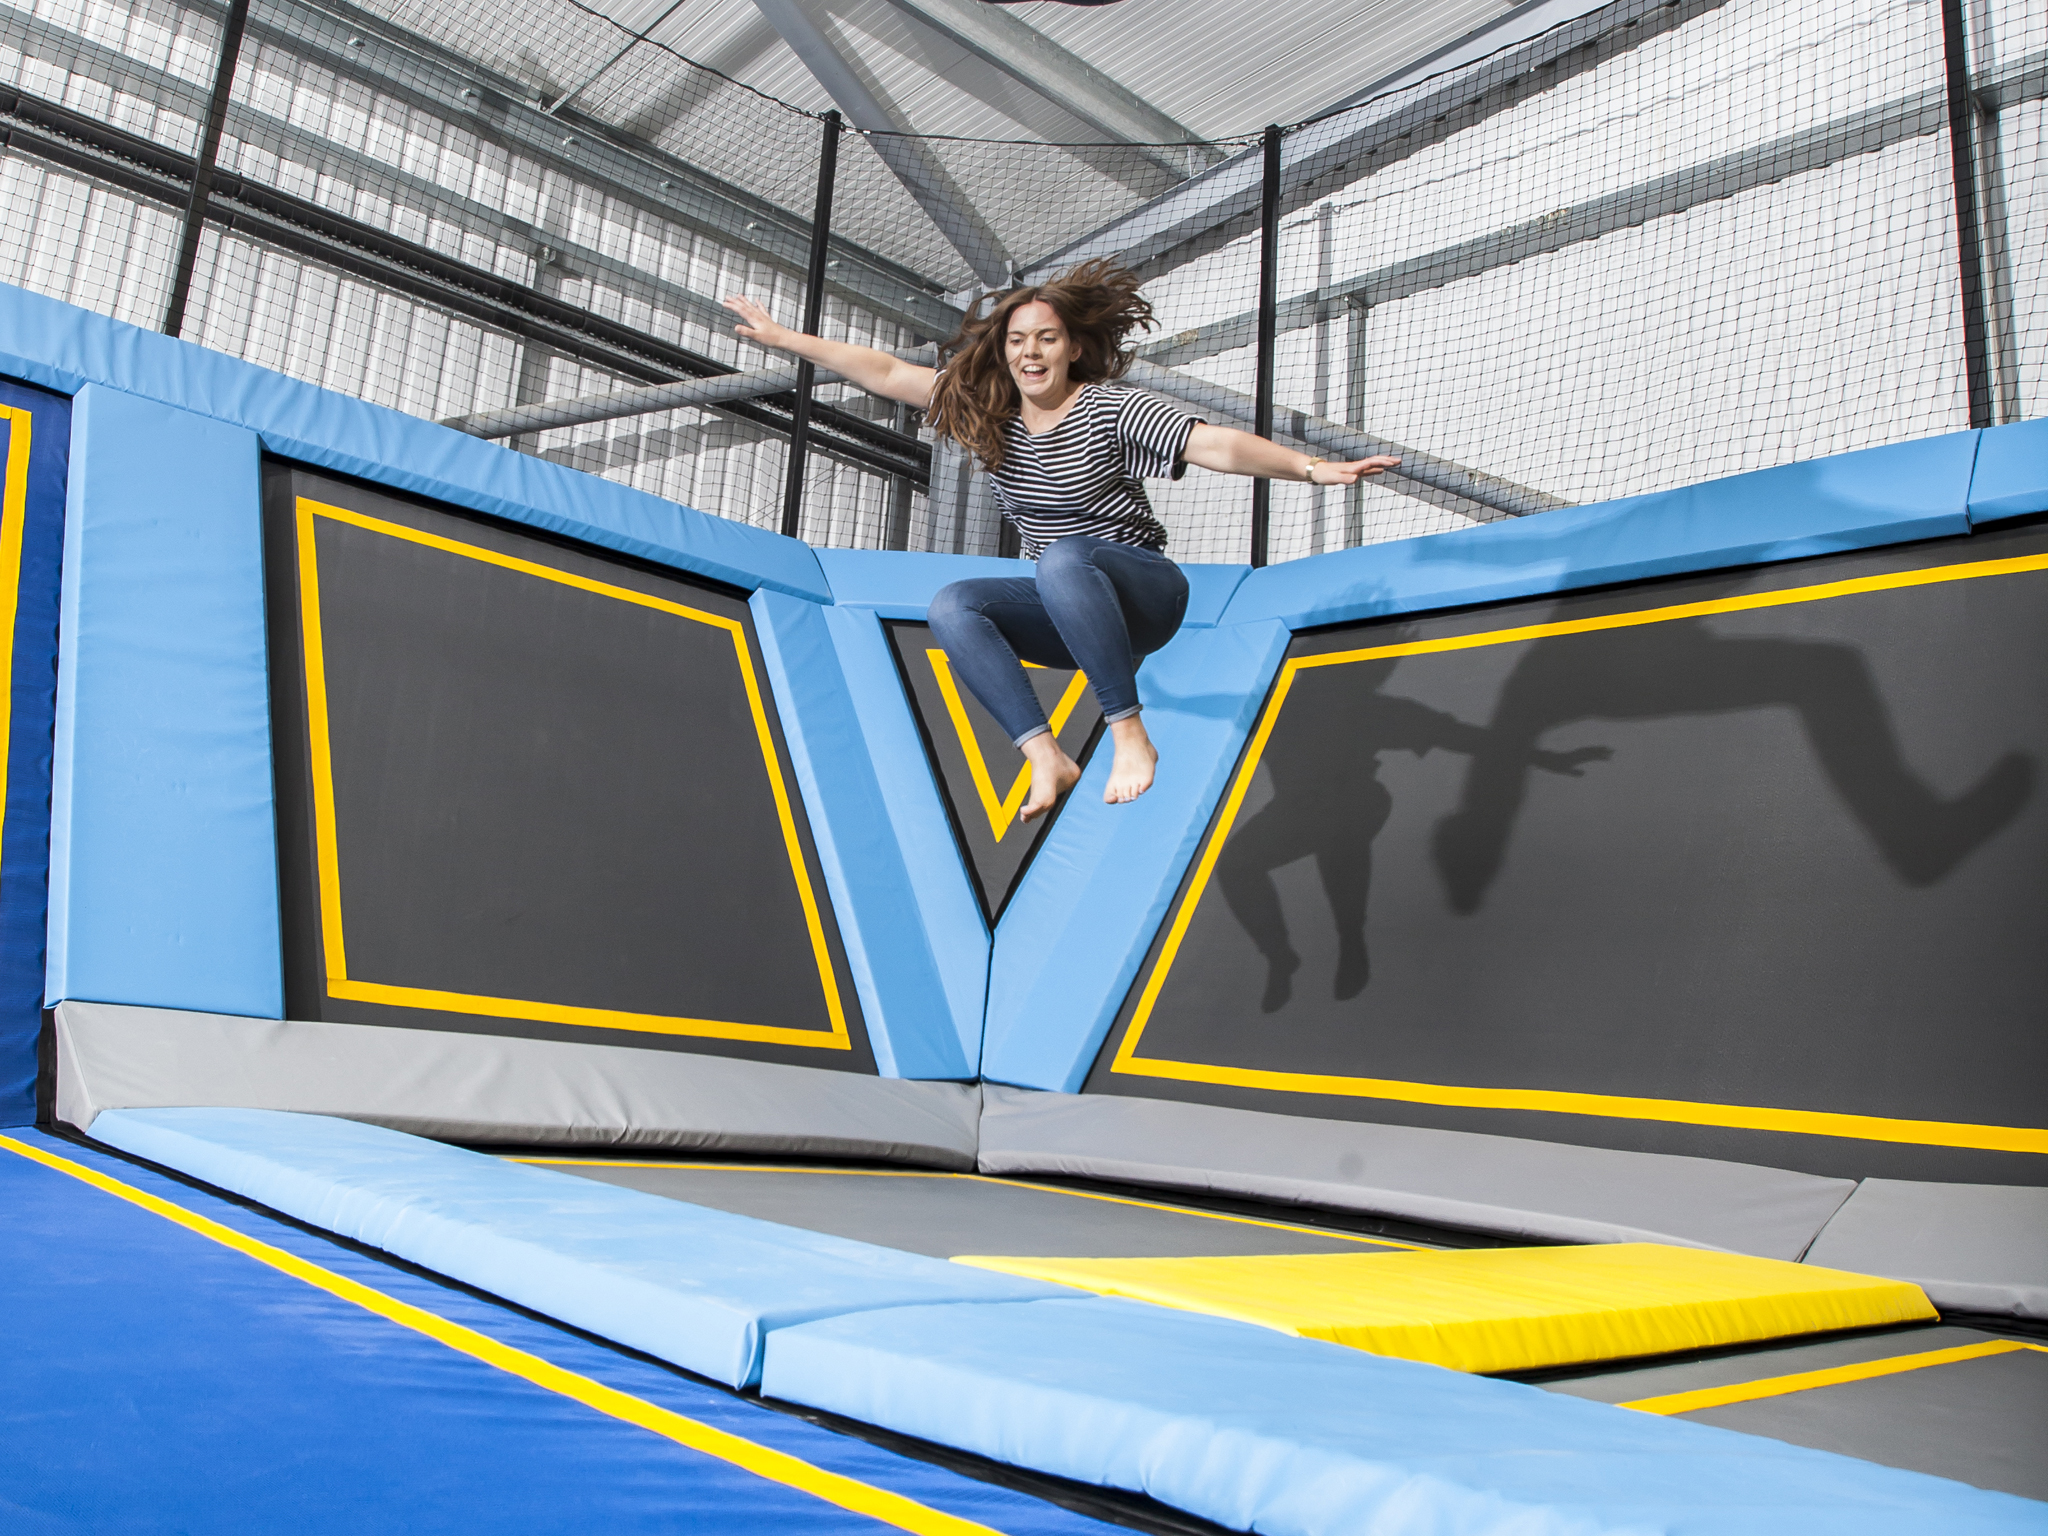 Get bouncy at a trampoline park